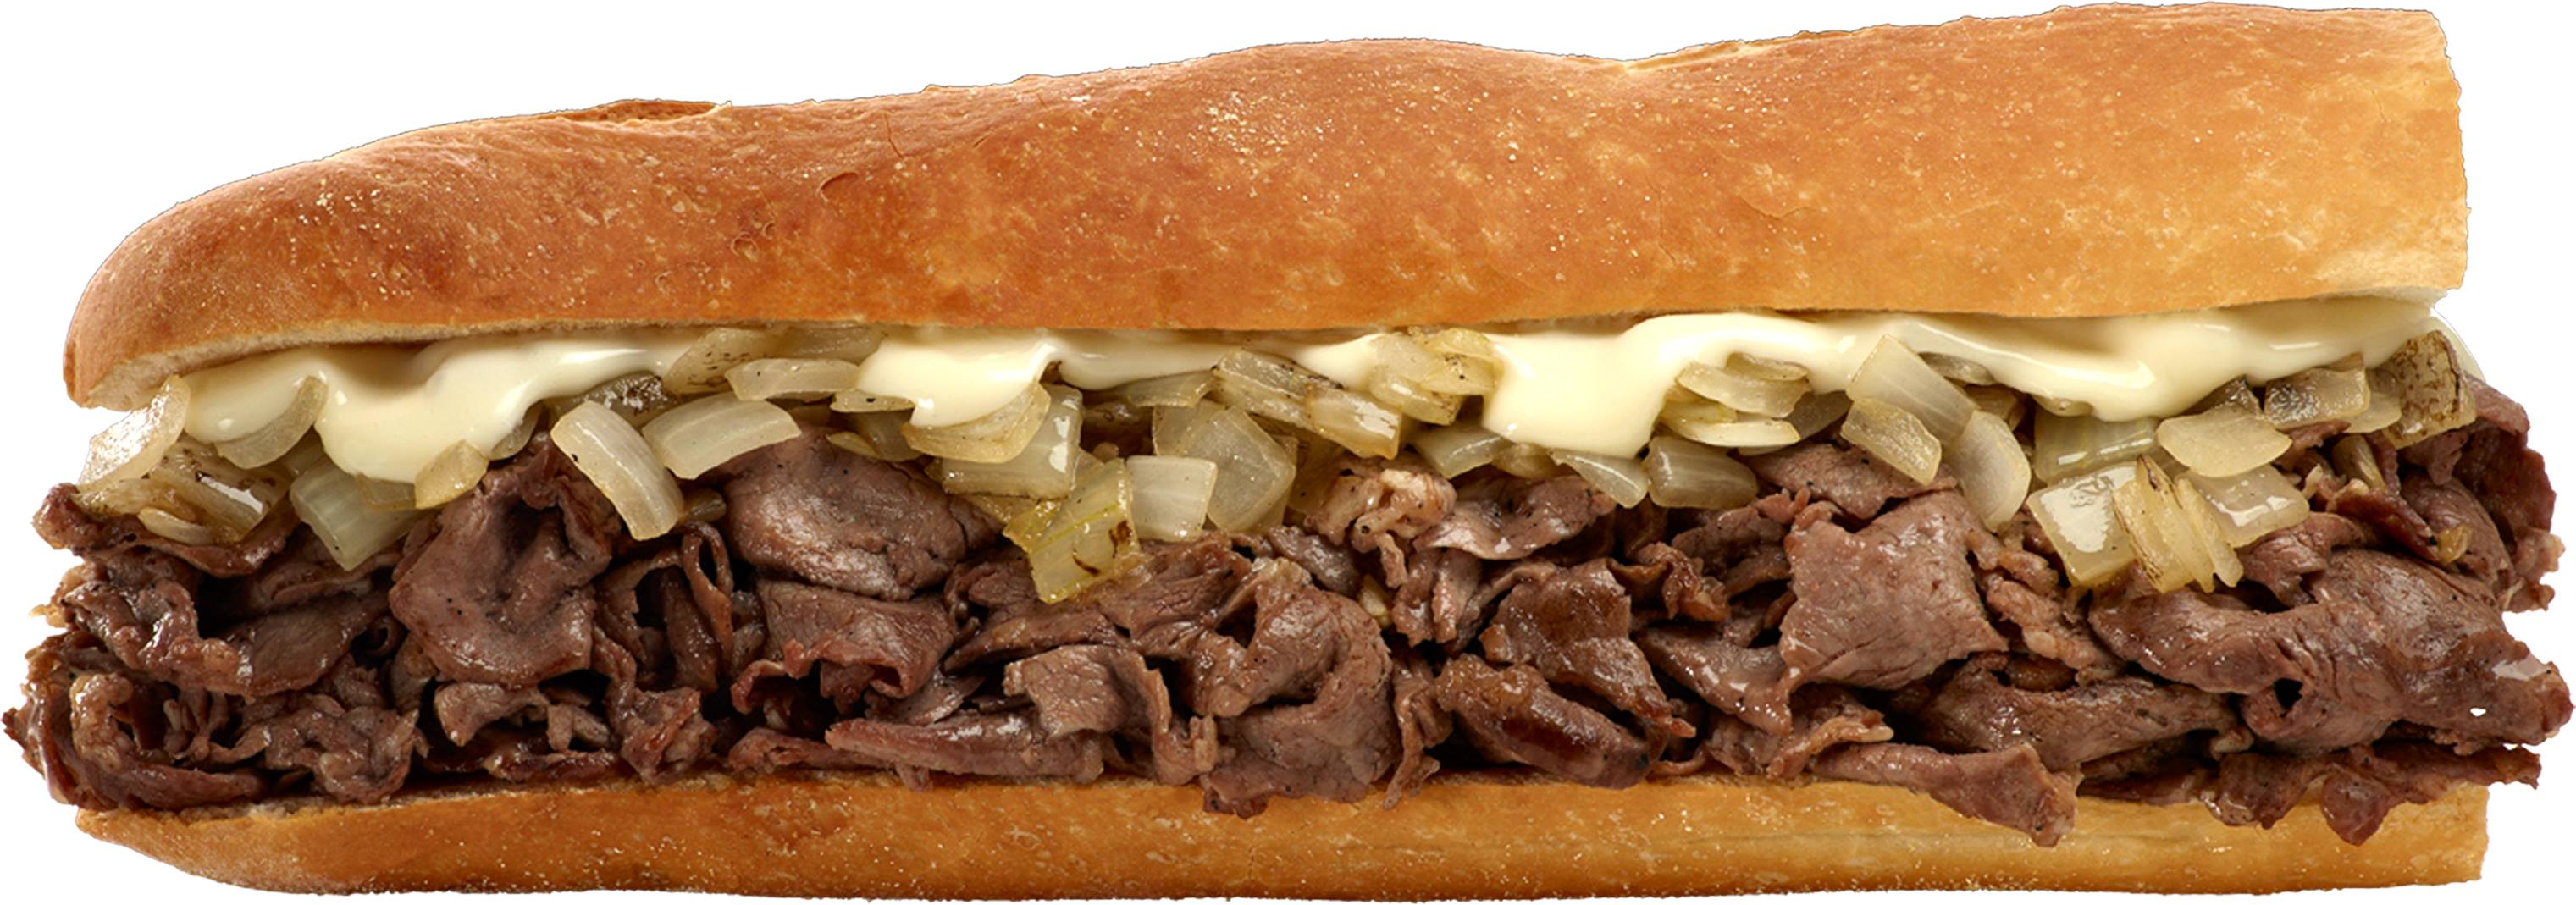 Tony Luke's is coming to Allentown. The unanswered question: will they serve their Philly cheesesteaks the local way, with tomato sauce?